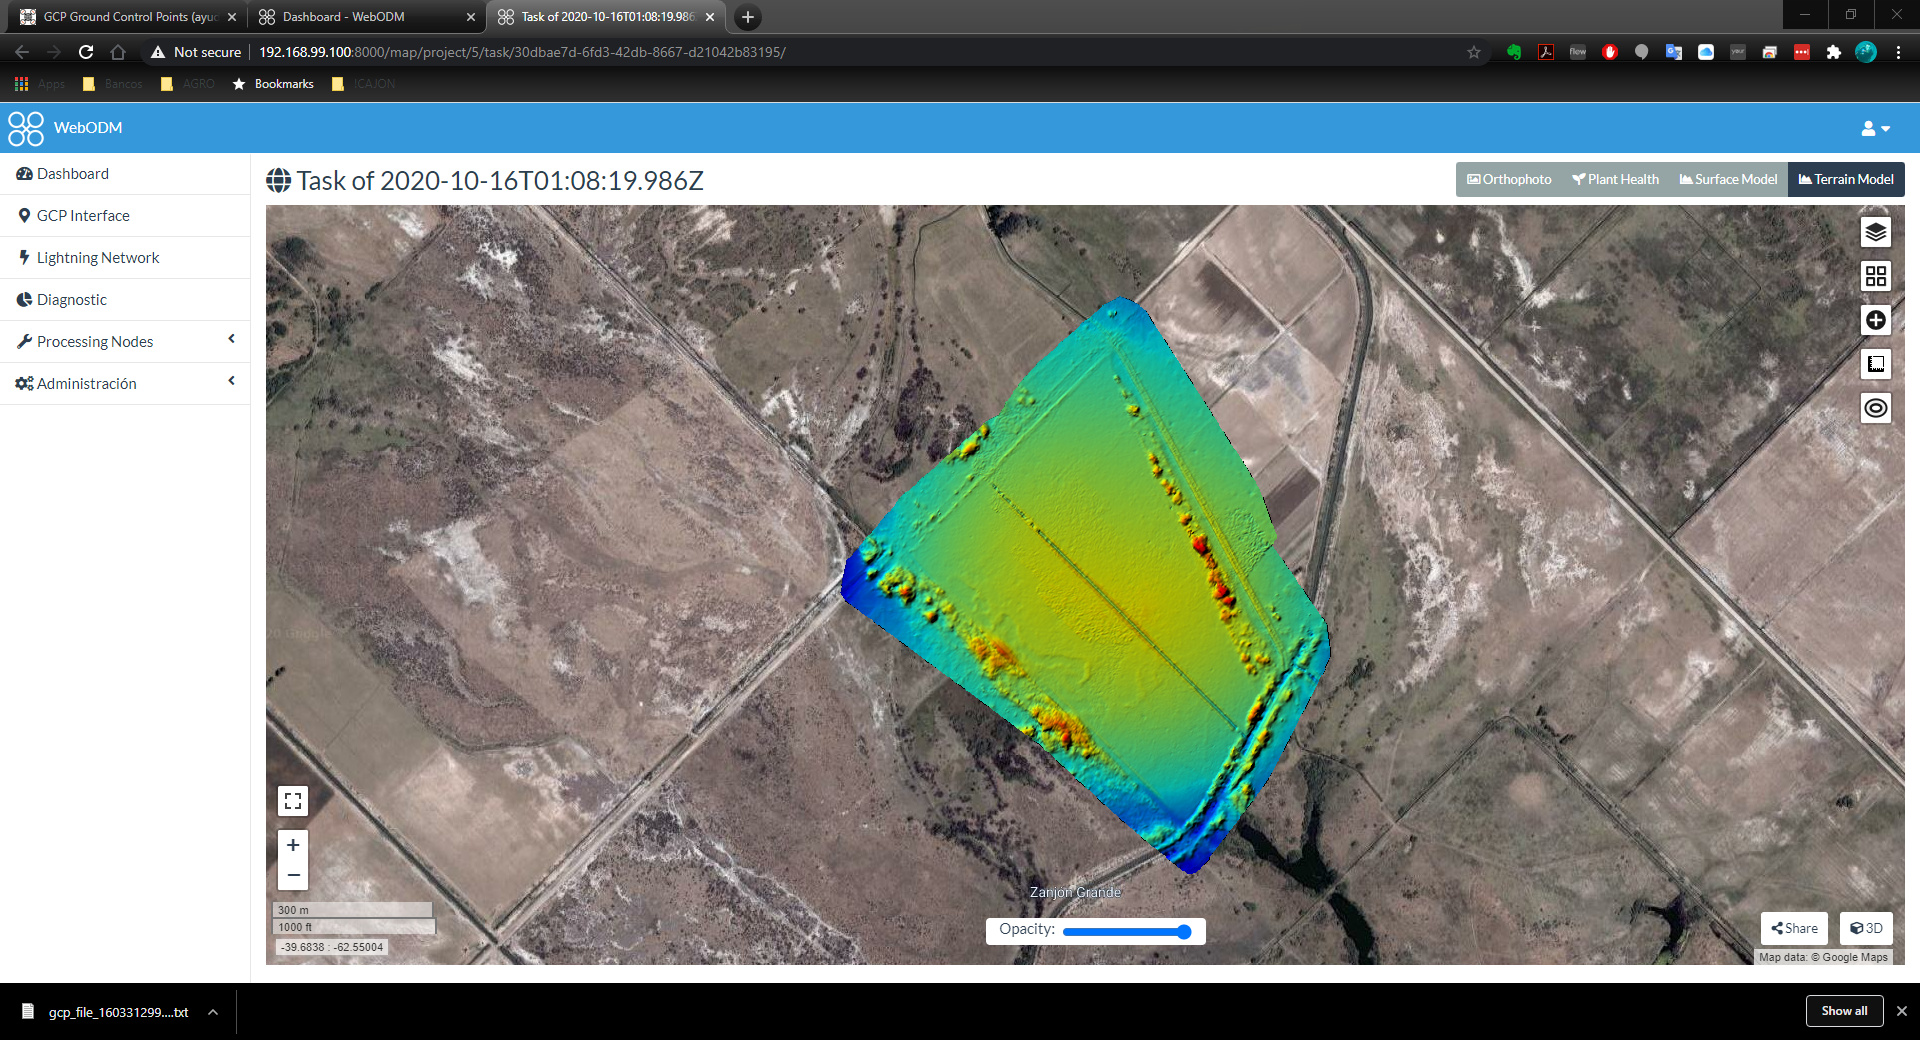 OPENDRONMAP SIN GCP